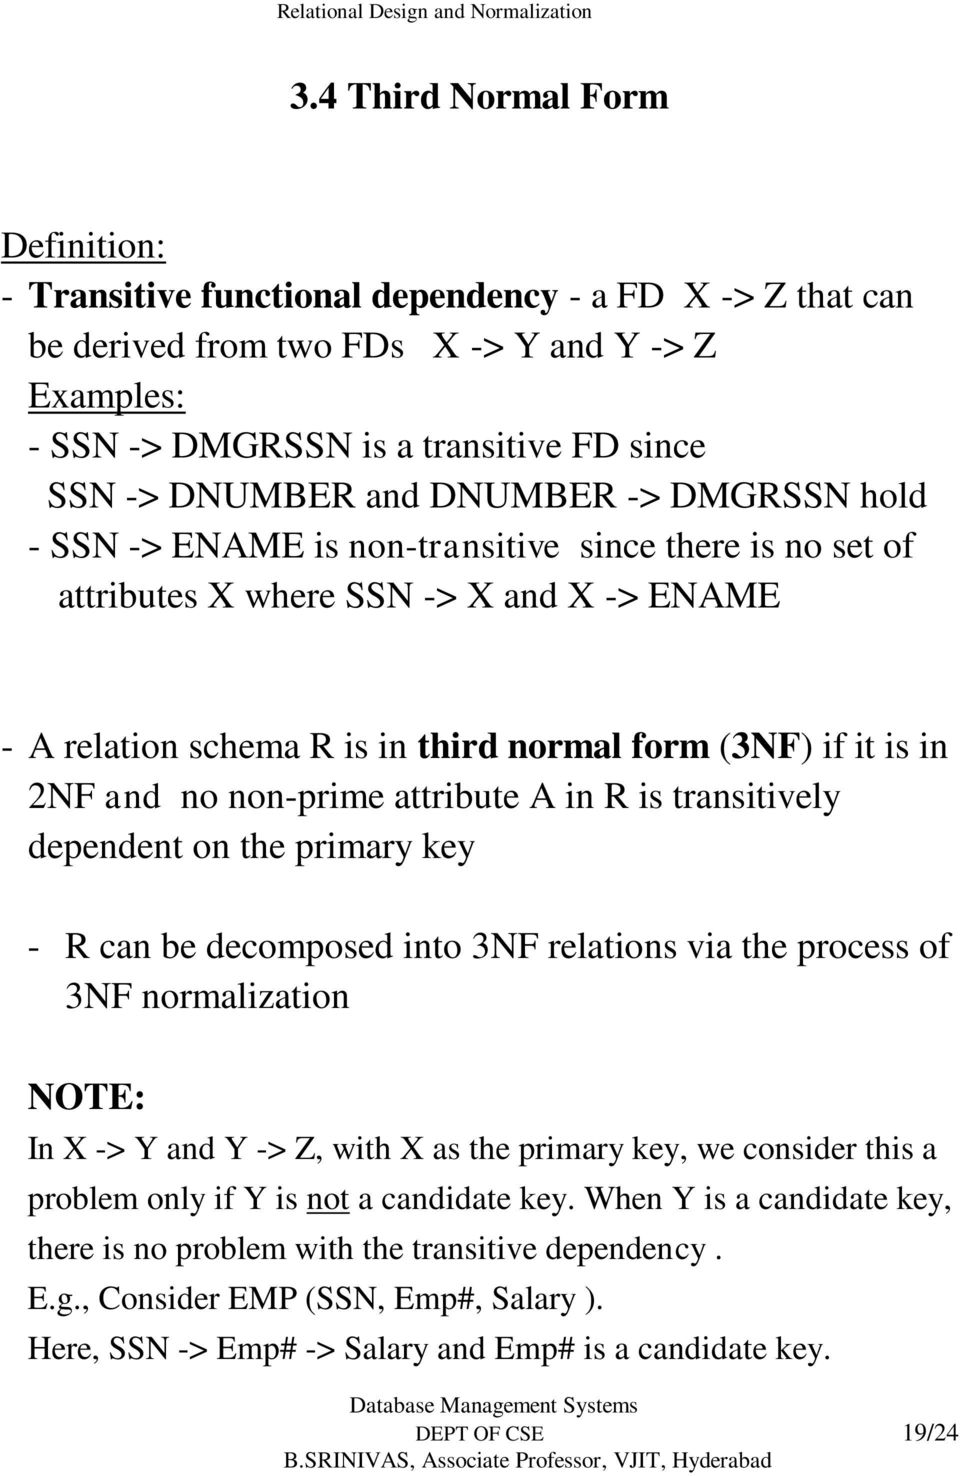 in 2NF and no non-prime attribute A in R is transitively dependent on the primary key - R can be decomposed into 3NF relations via the process of 3NF normalization NOTE: In X -> Y and Y -> Z, with X